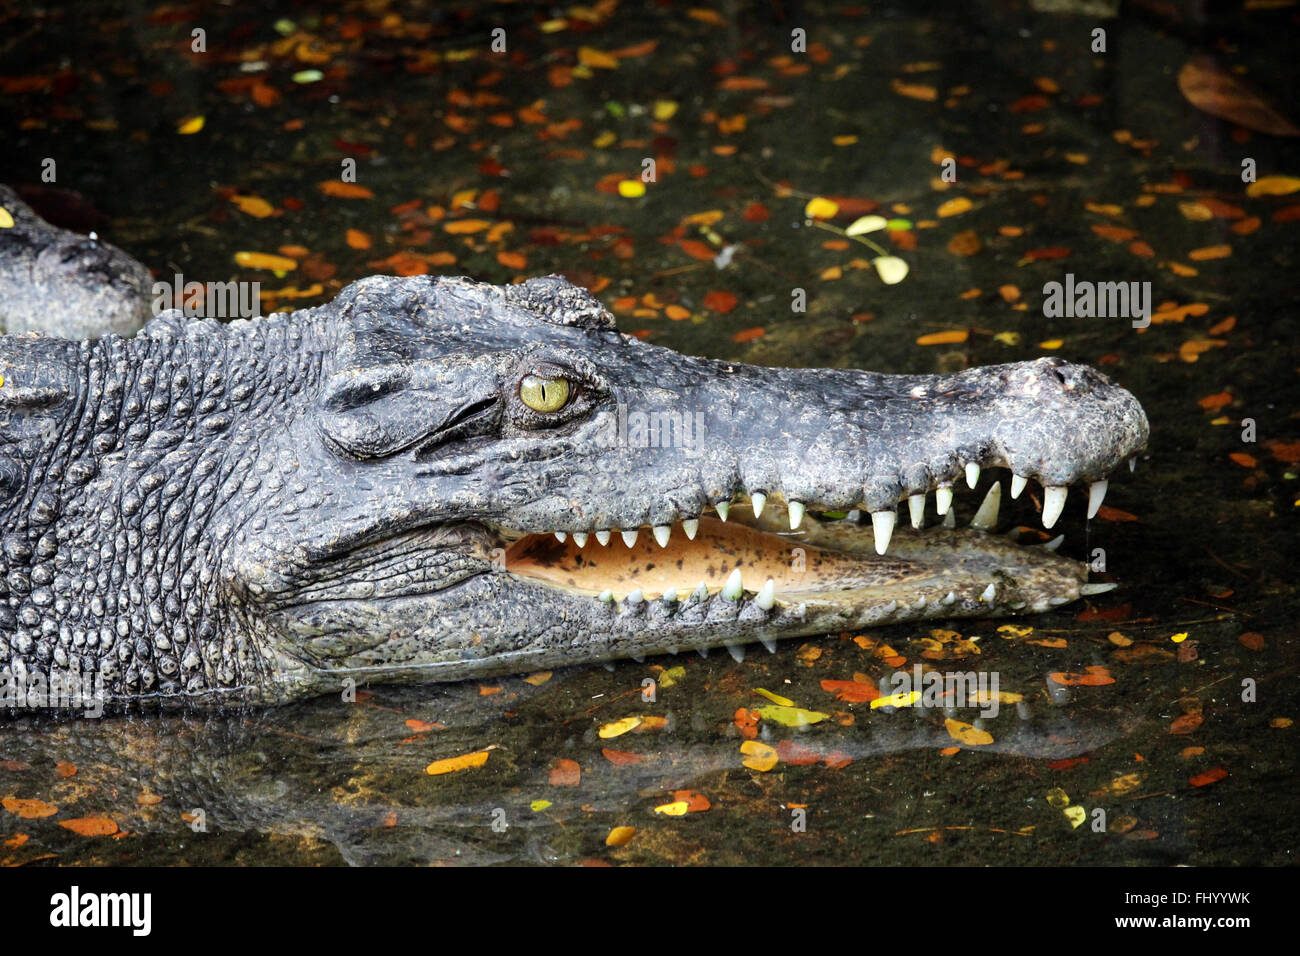 MIRI/MALAYSIA - 24 NOVEMBER 2015: A crocodile with big teeth in Borneo next to the border between Malaysia and Brunei - Stock Image